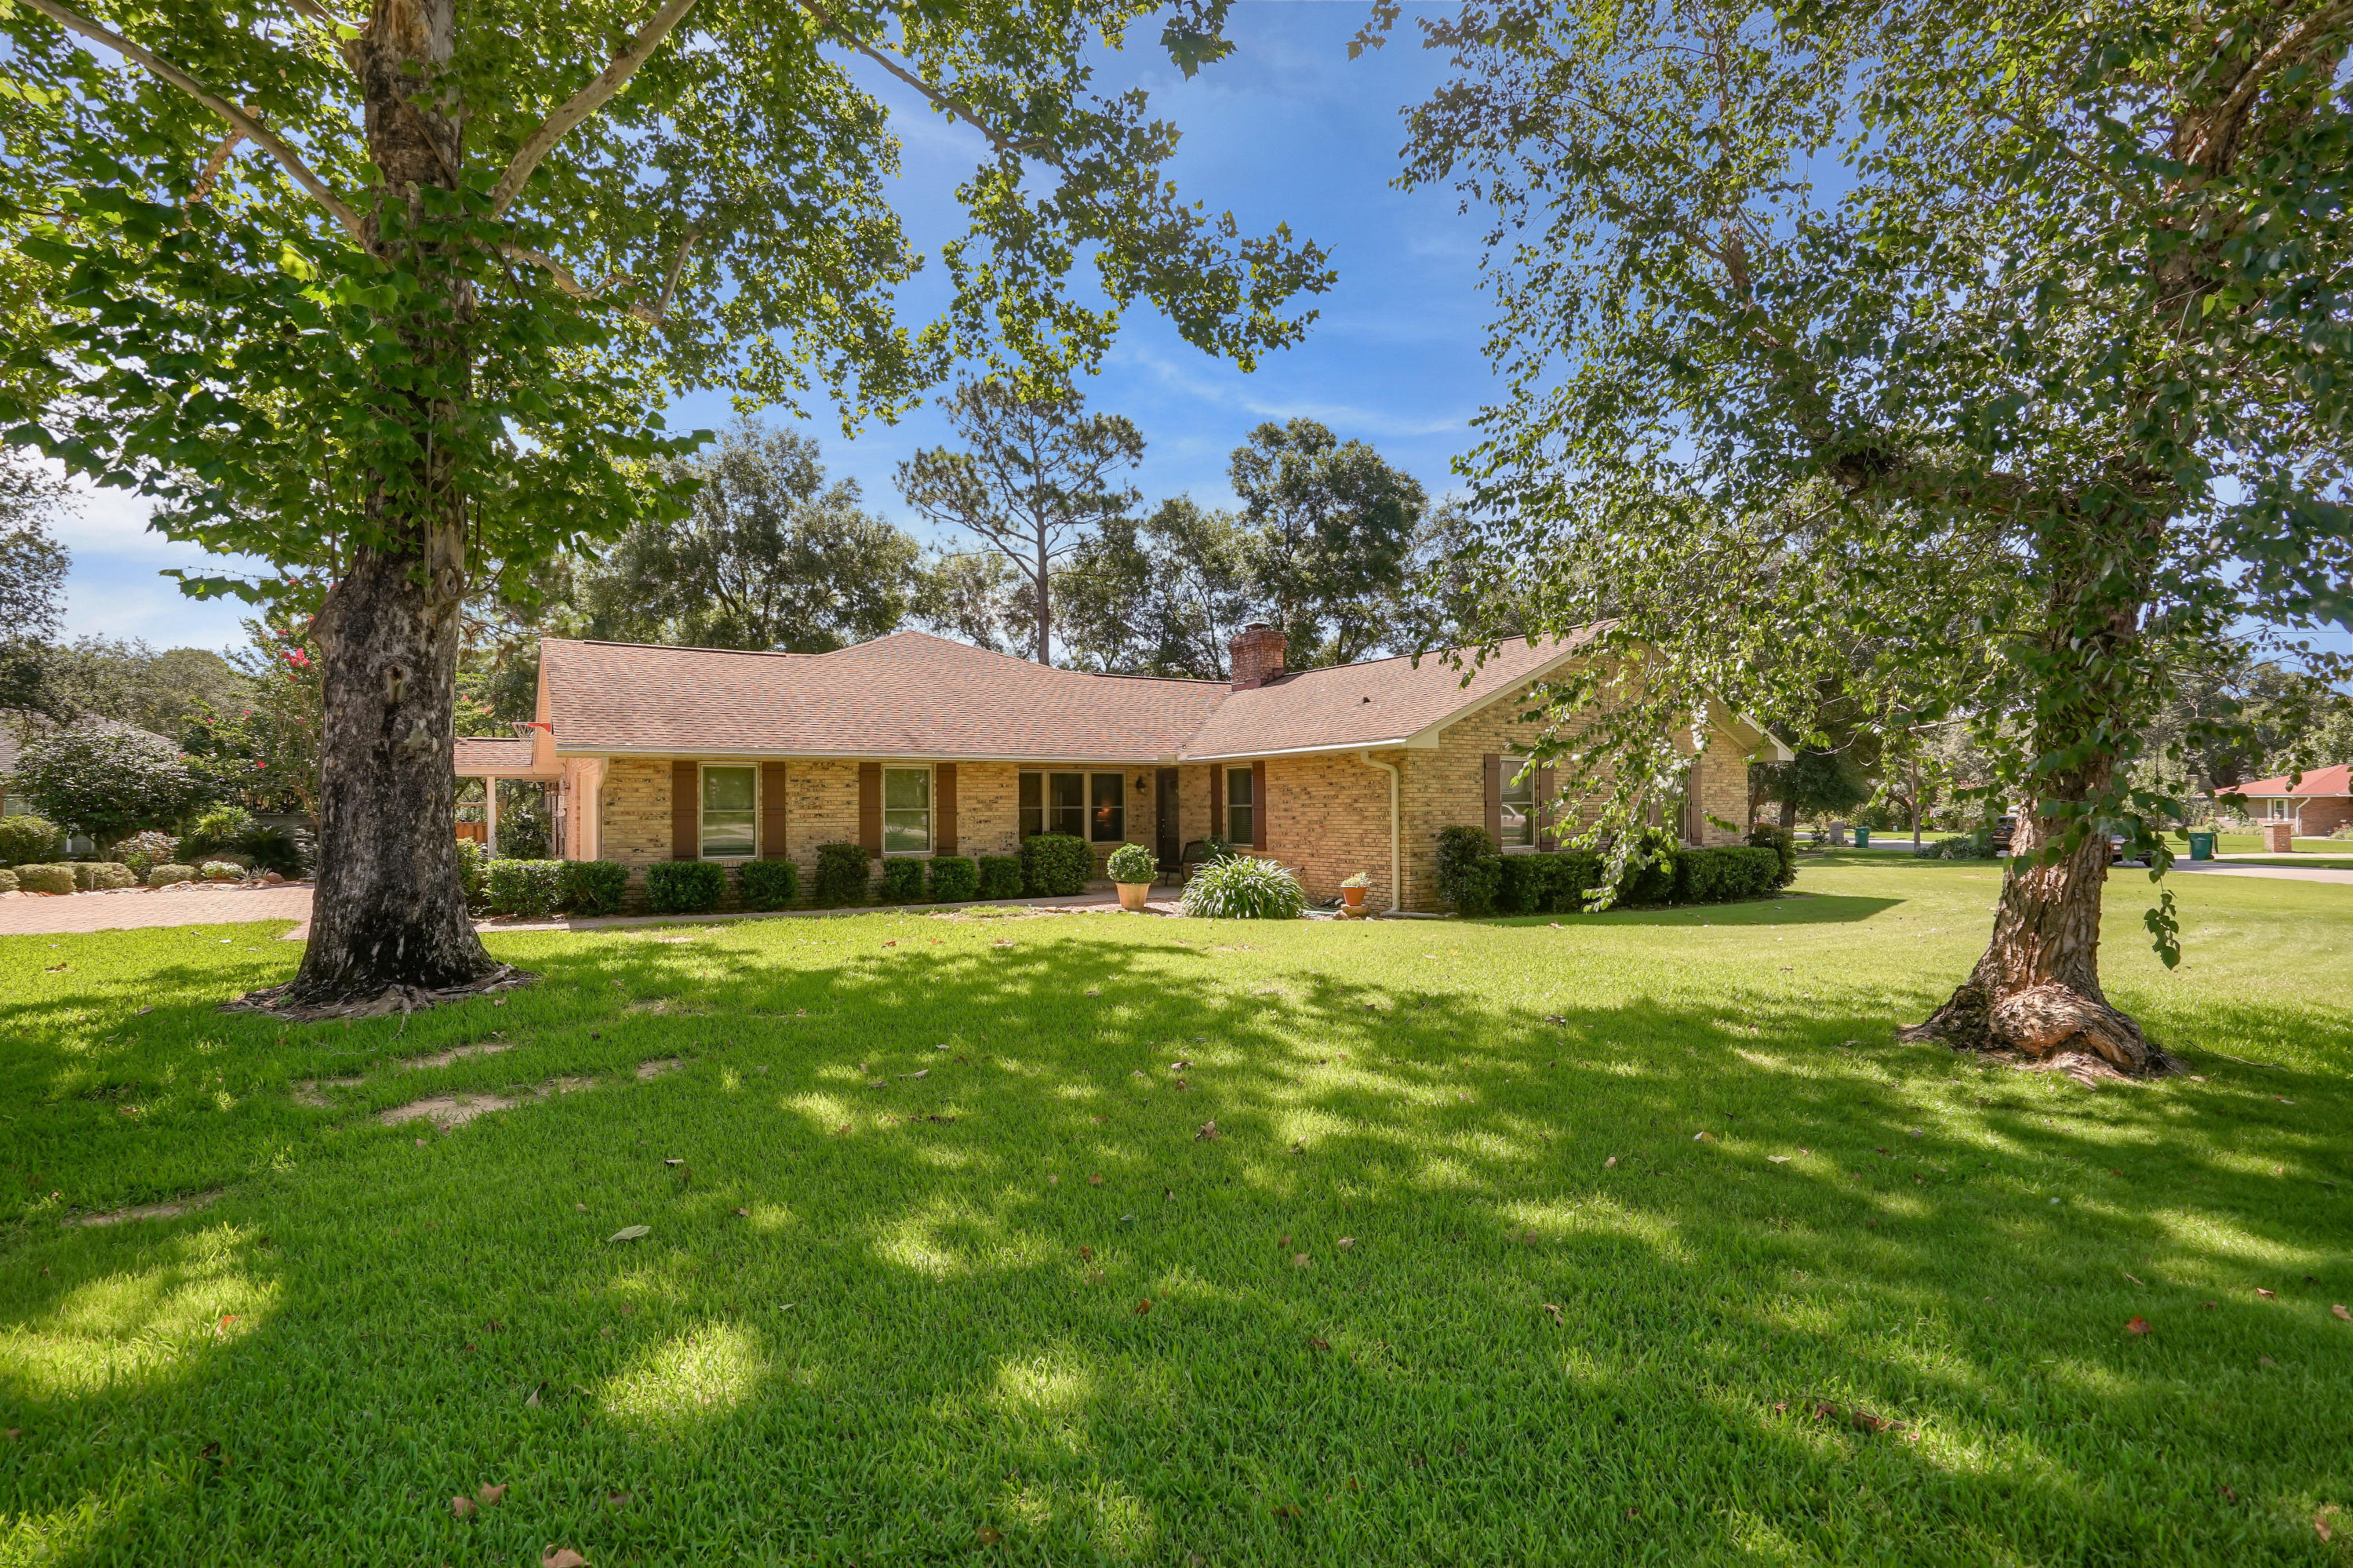 Photo of home for sale at 62 Irene, Niceville FL